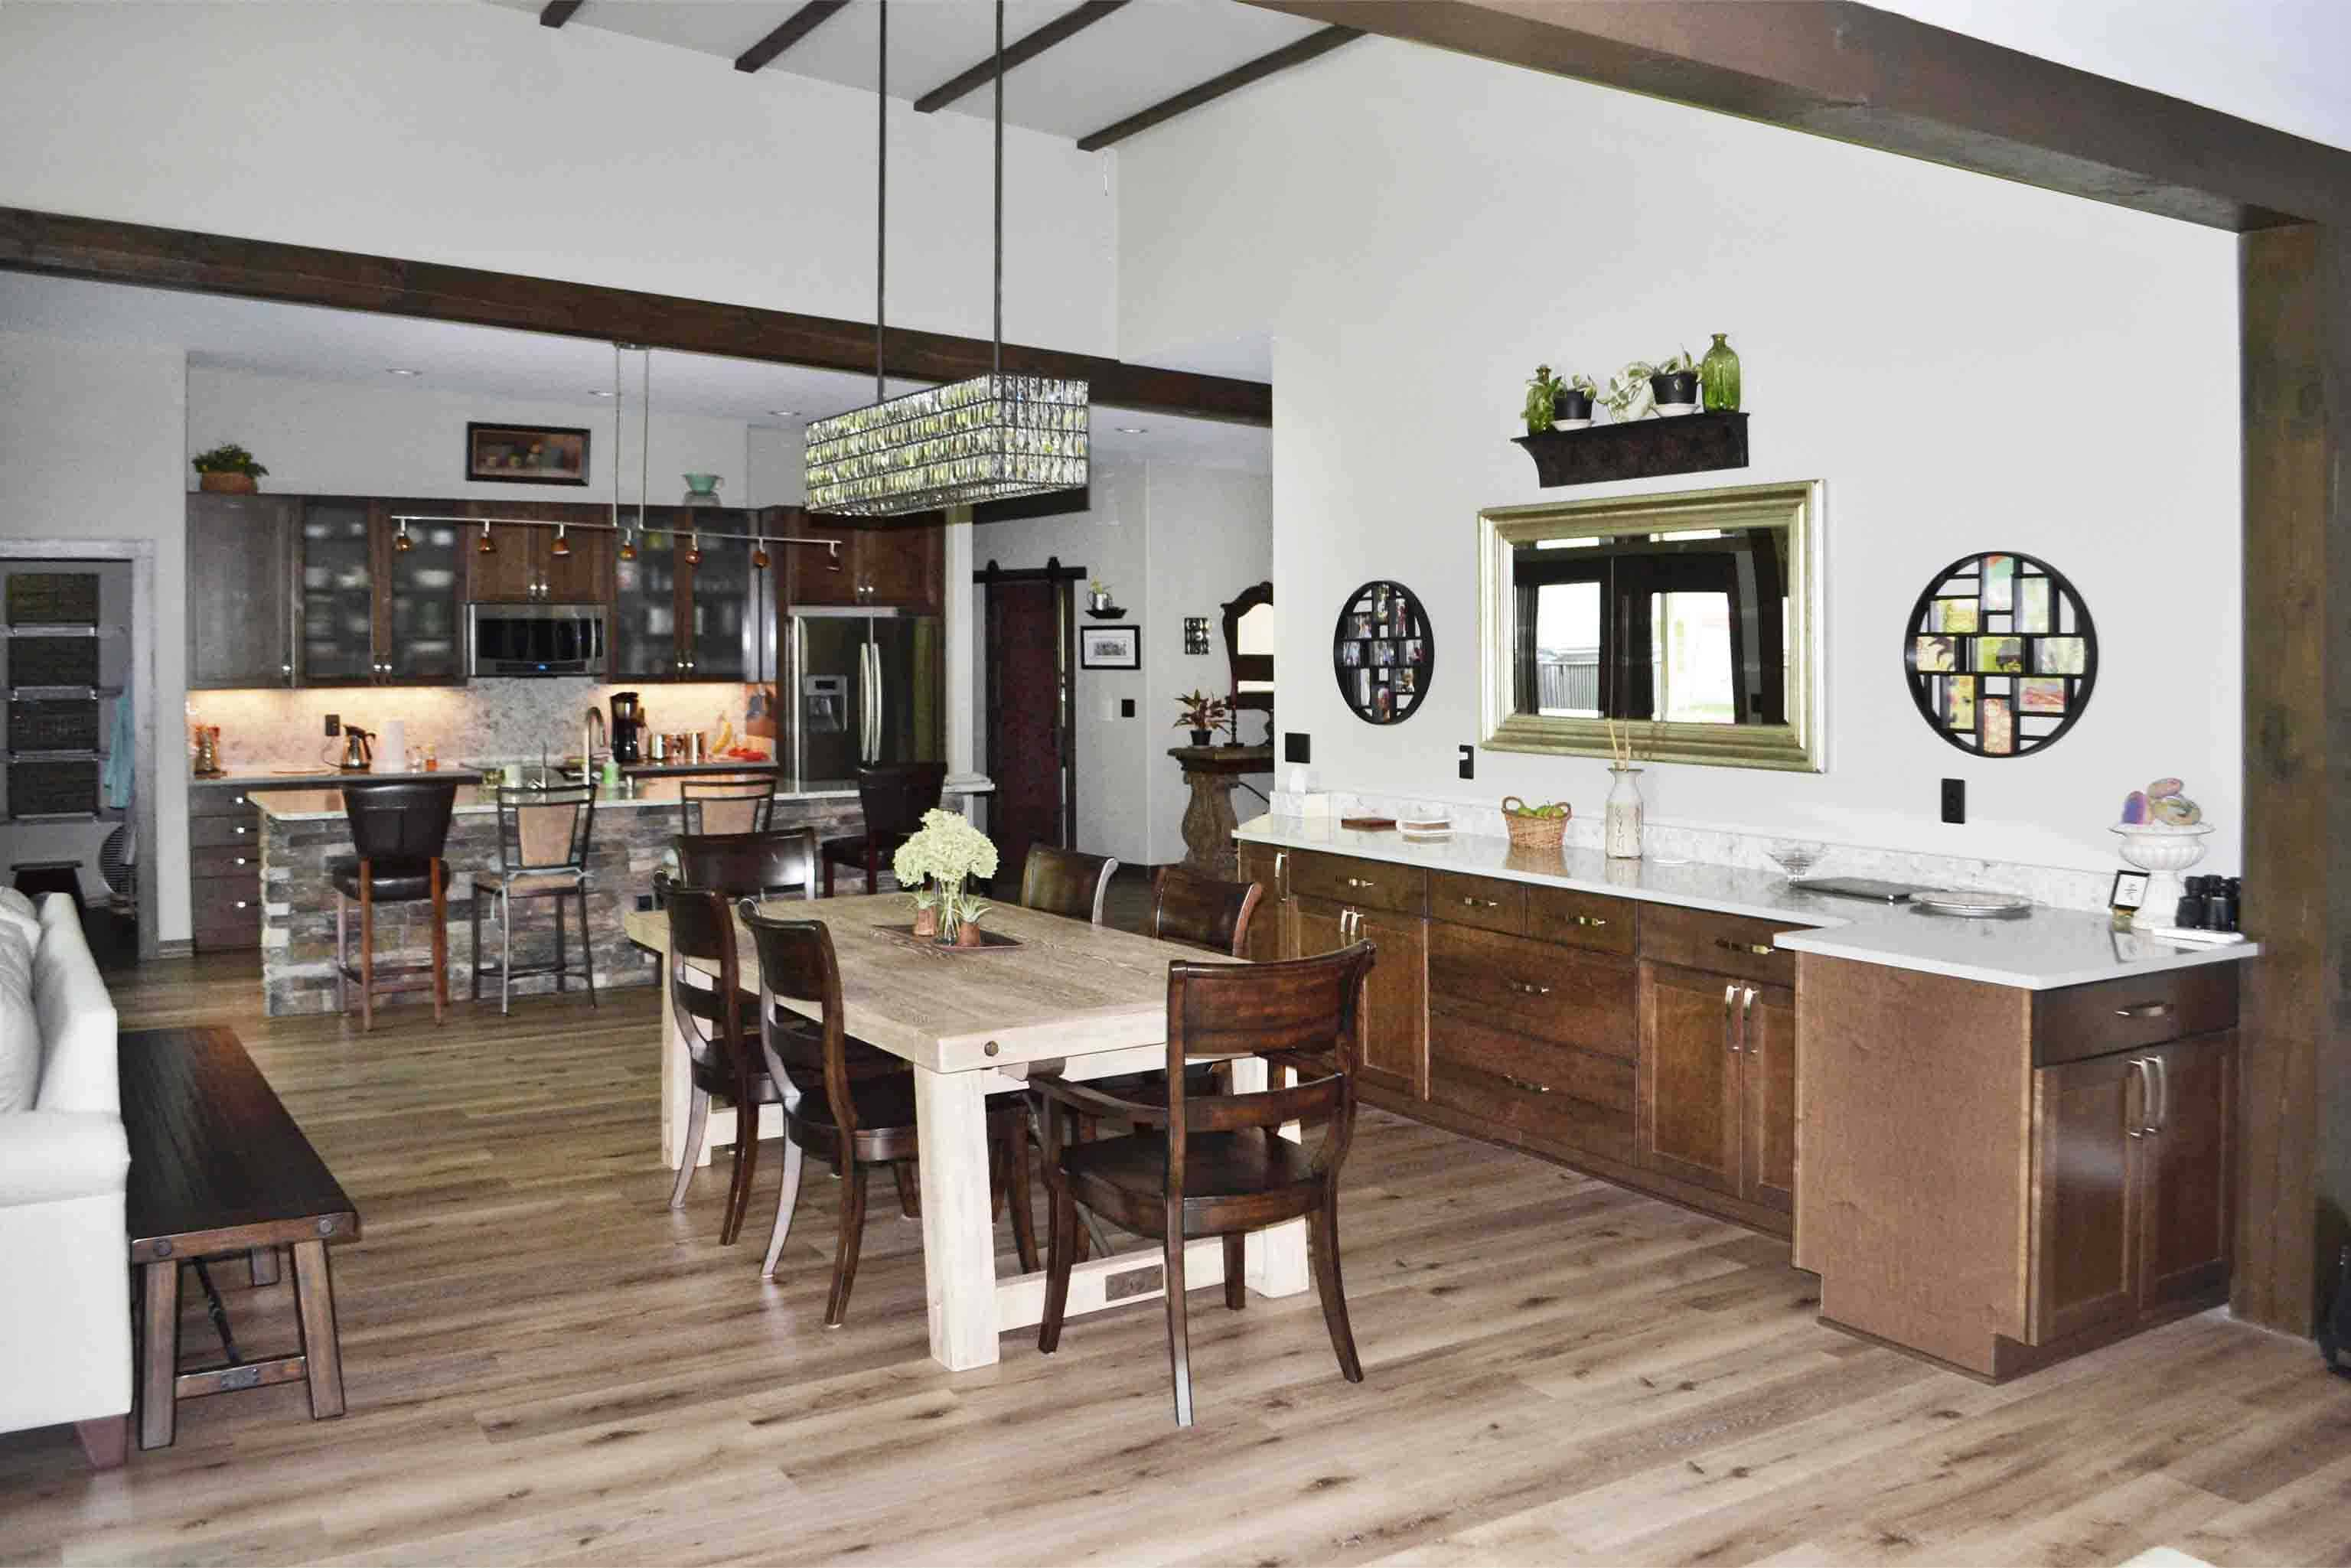 Truoba house dining room interior in Tennessee